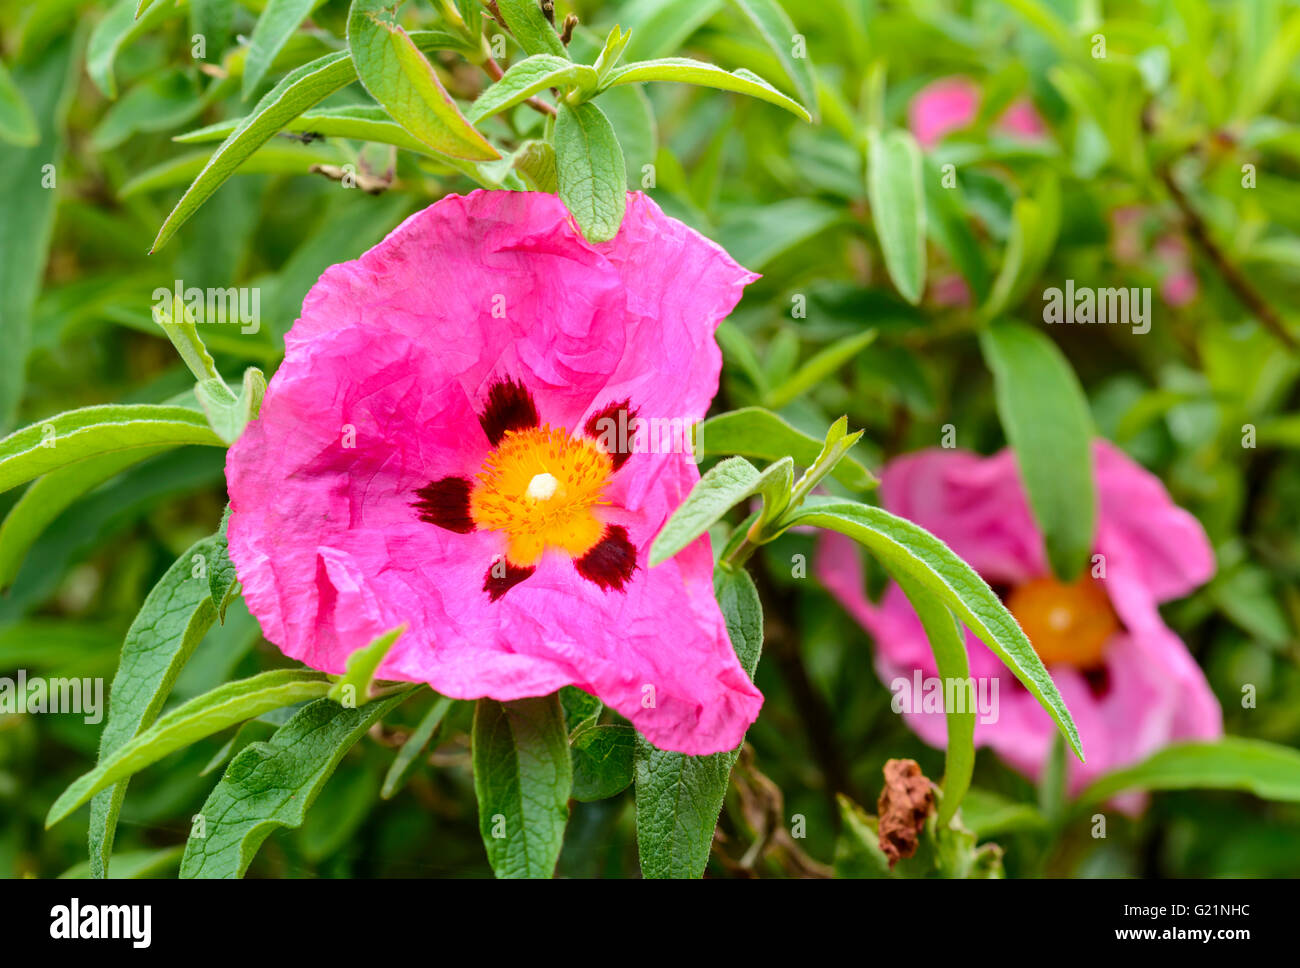 Lila Zistrosen (Cistus Purpureus) blühende Strauch im Frühjahr in West Sussex, UK. Stockfoto